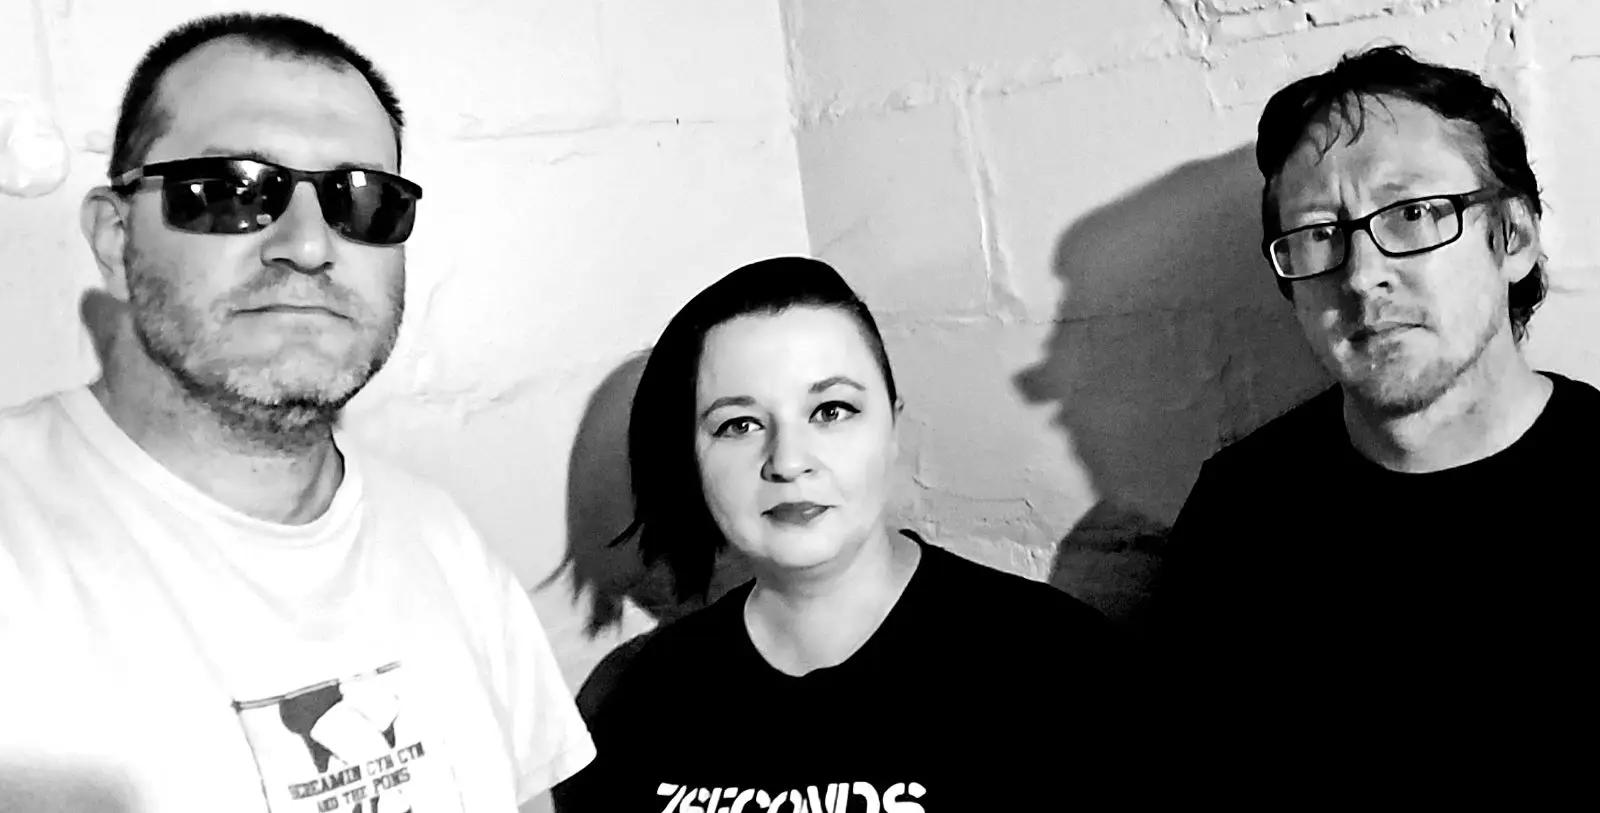 Murder Generation Bringing An Indictment Of The Status Quo Framed In Stripped Down Punk Rock